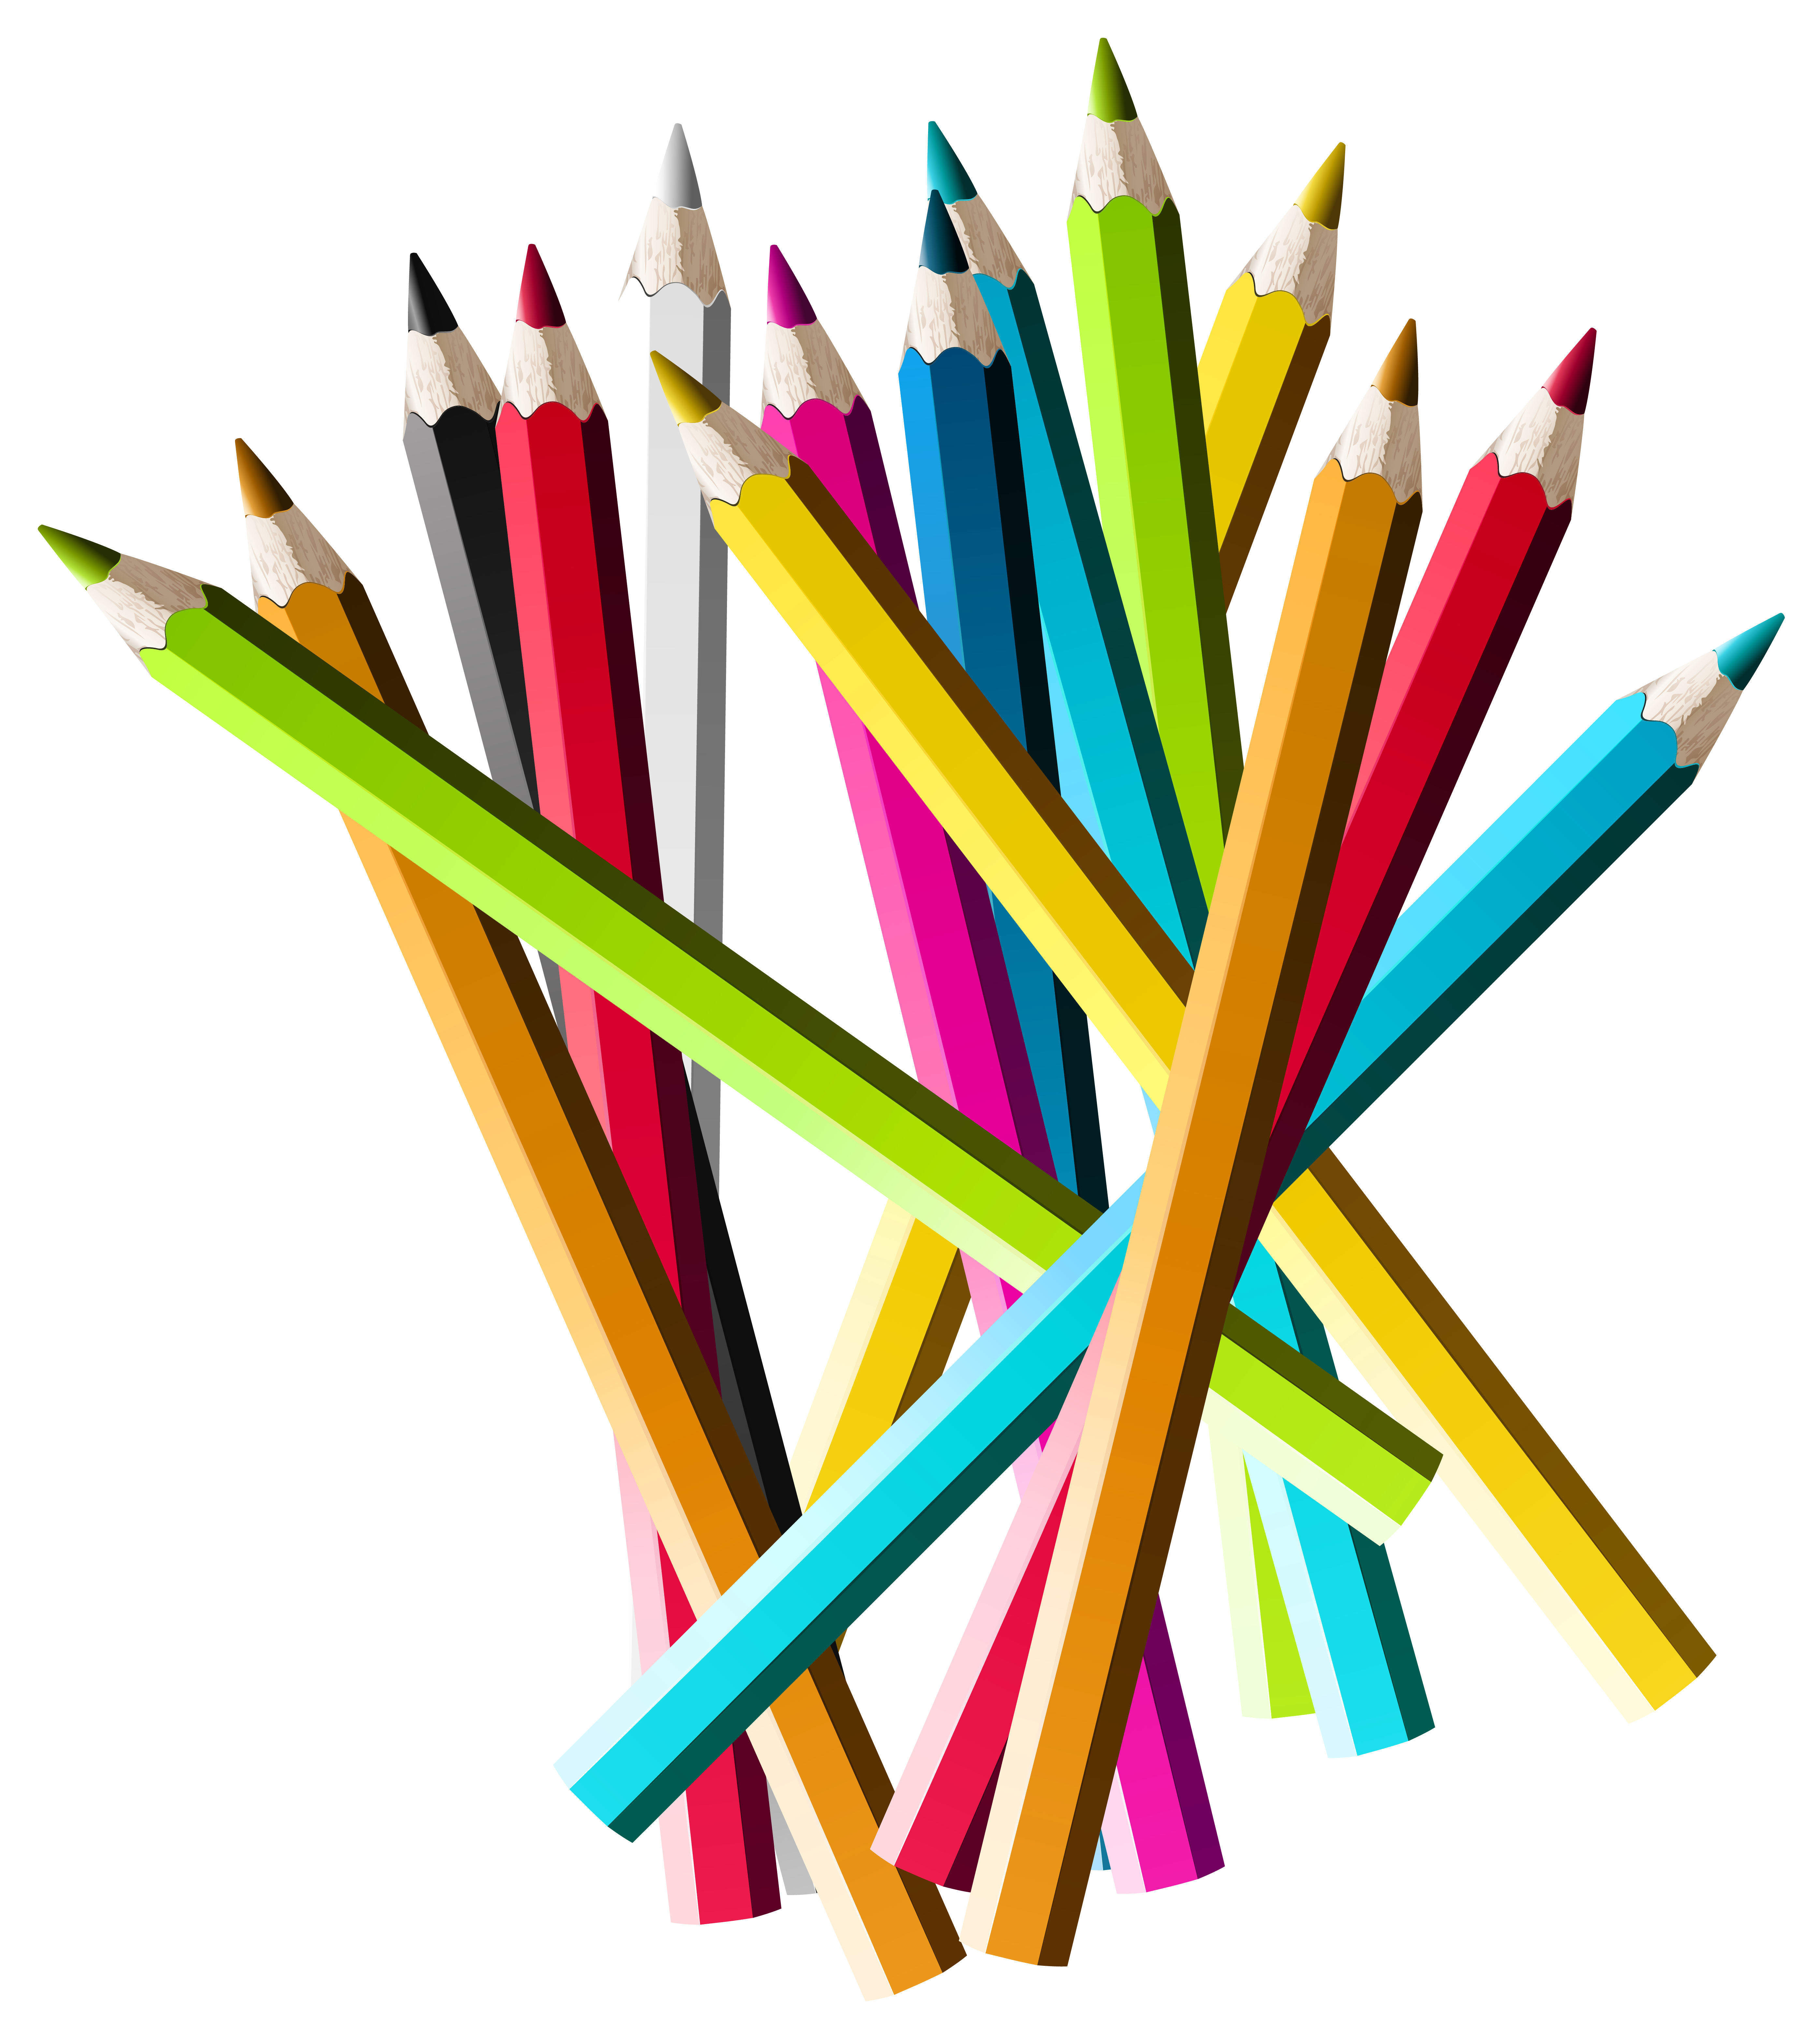 5579x6273 Colorful Pencils Png Clipart Pictureu200b Gallery Yopriceville